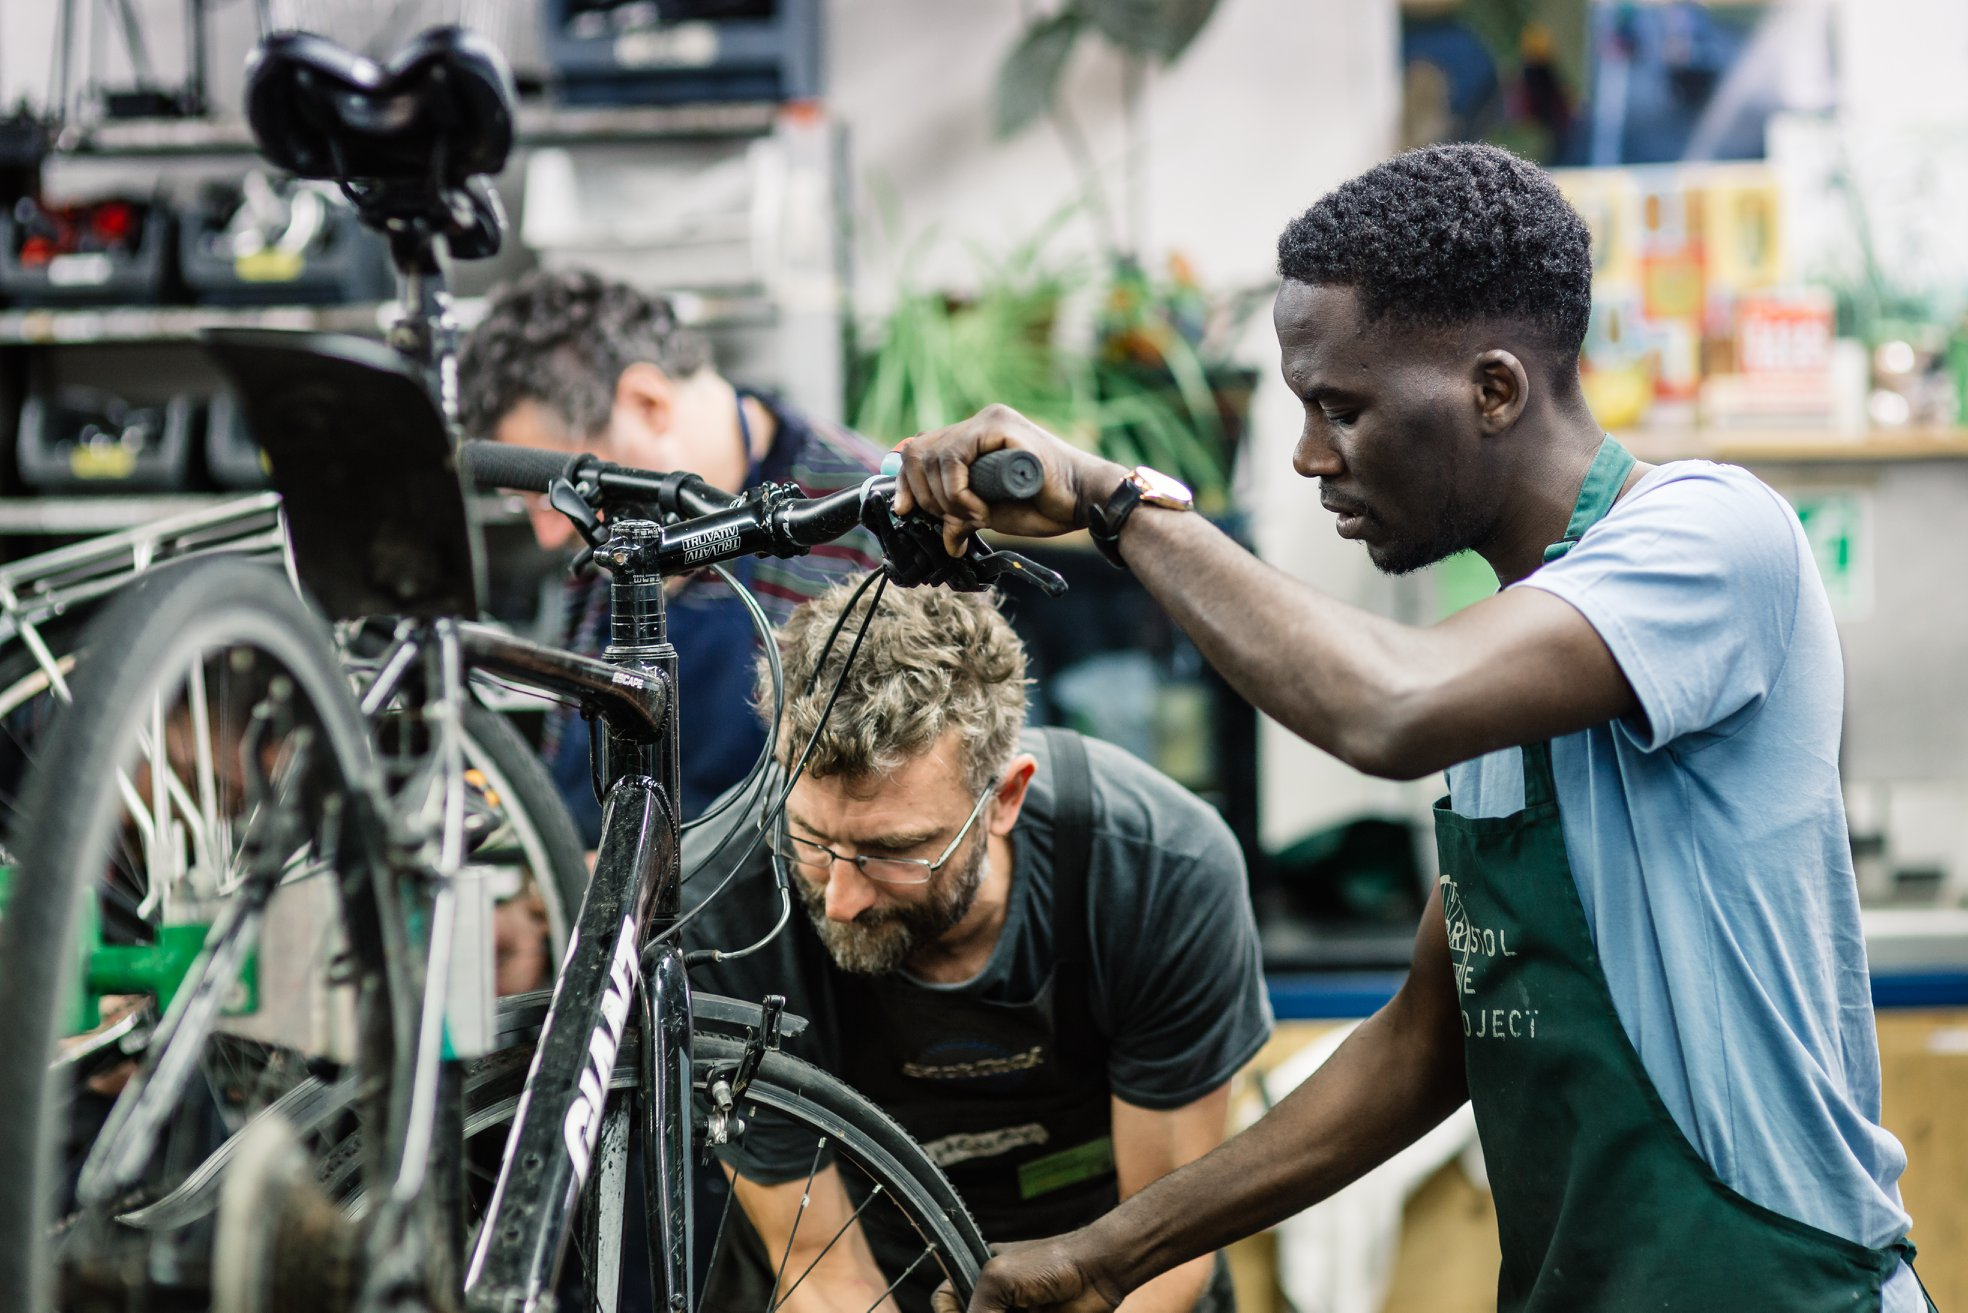 The Bristol Bike Project: Building A Better Future on Two Wheels